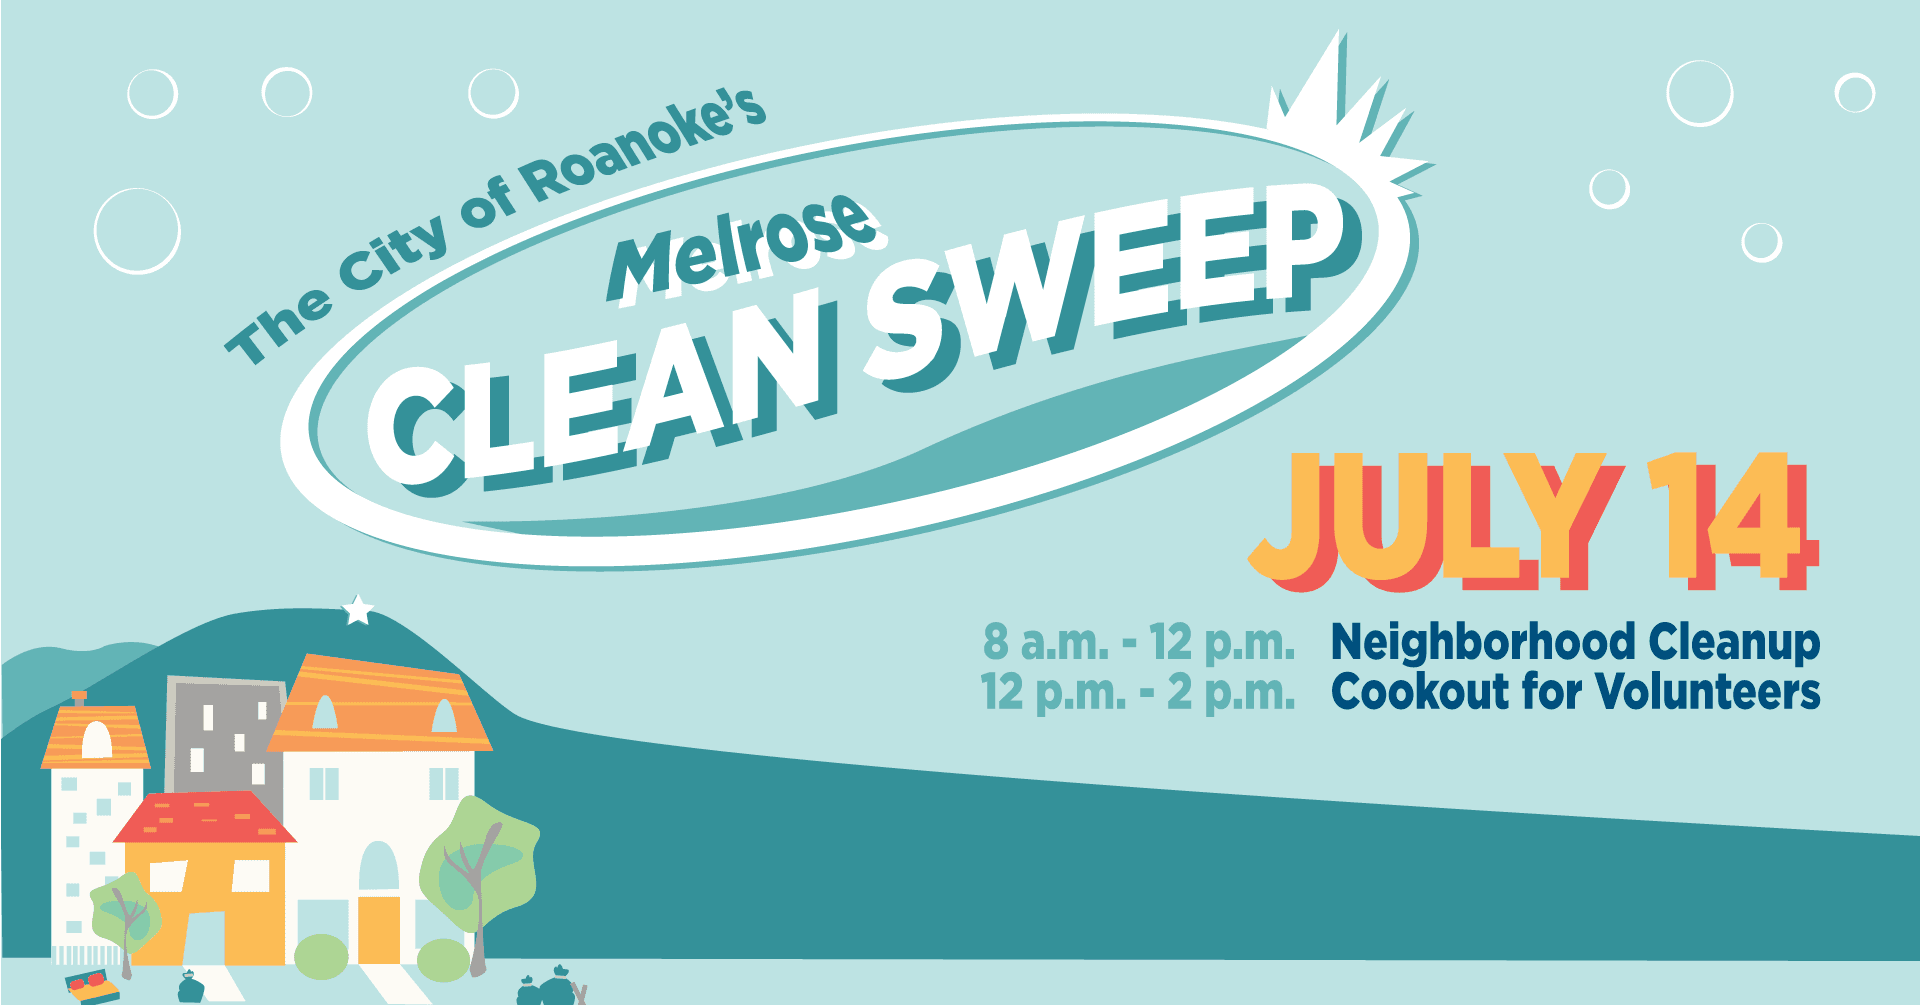 Graphic for Roanoke Melrose Clean Sweep 2018 Event